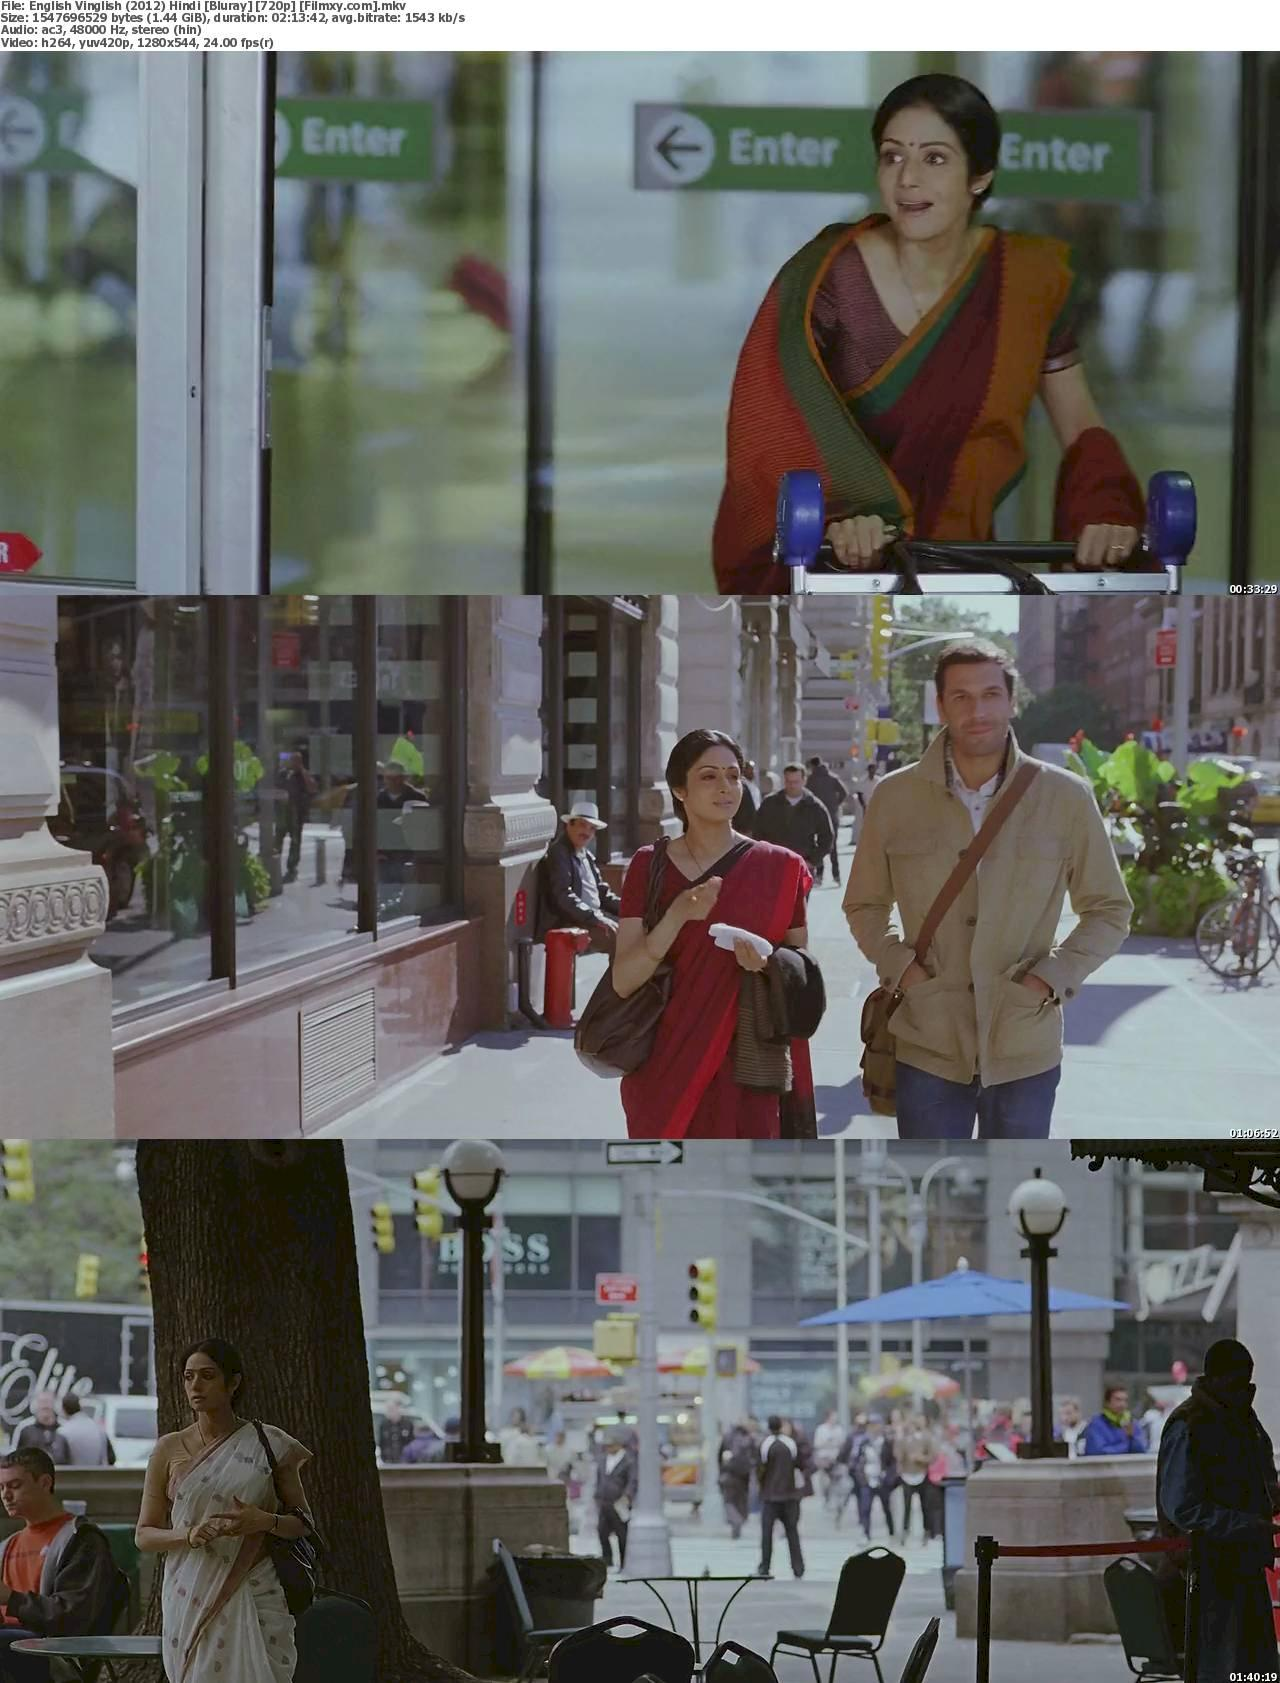 English Vinglish (2012) [720p & 1080p] Bluray Free Movie Watch Online & Download 720p Screenshot